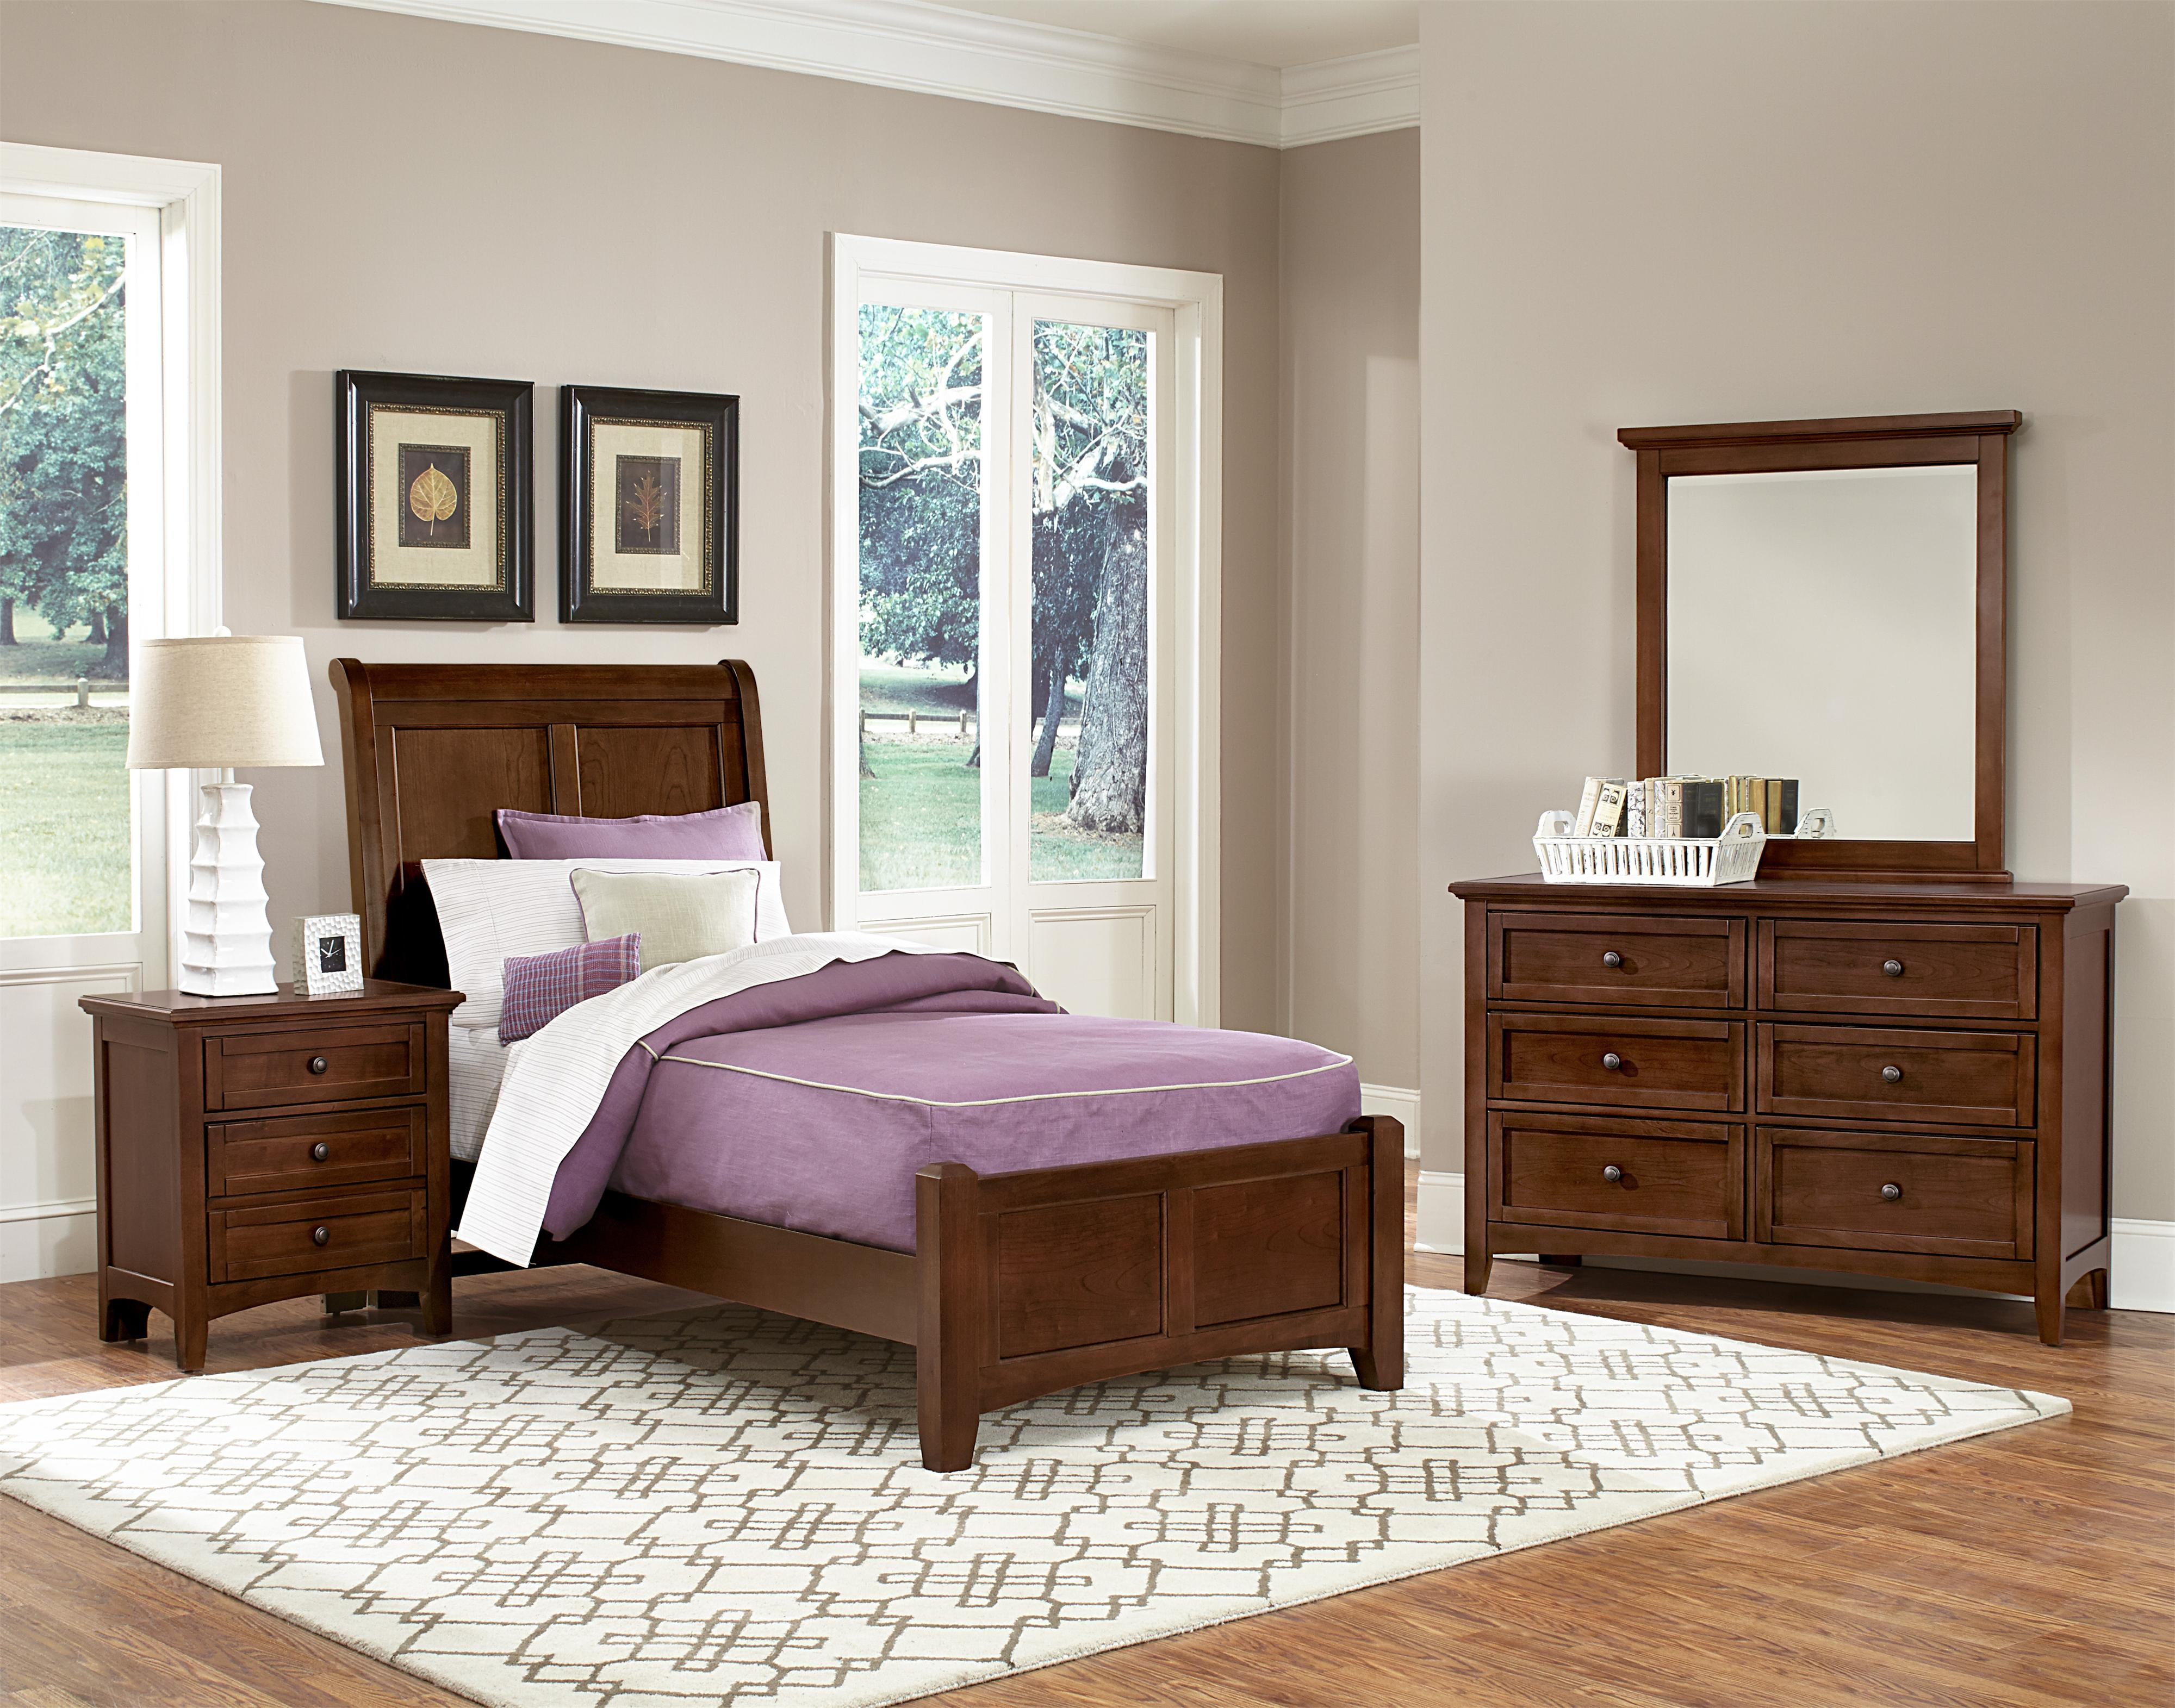 Vaughan Bassett Bonanza Twin Bedroom Group - Item Number: BB28 T Bedroom Group 2